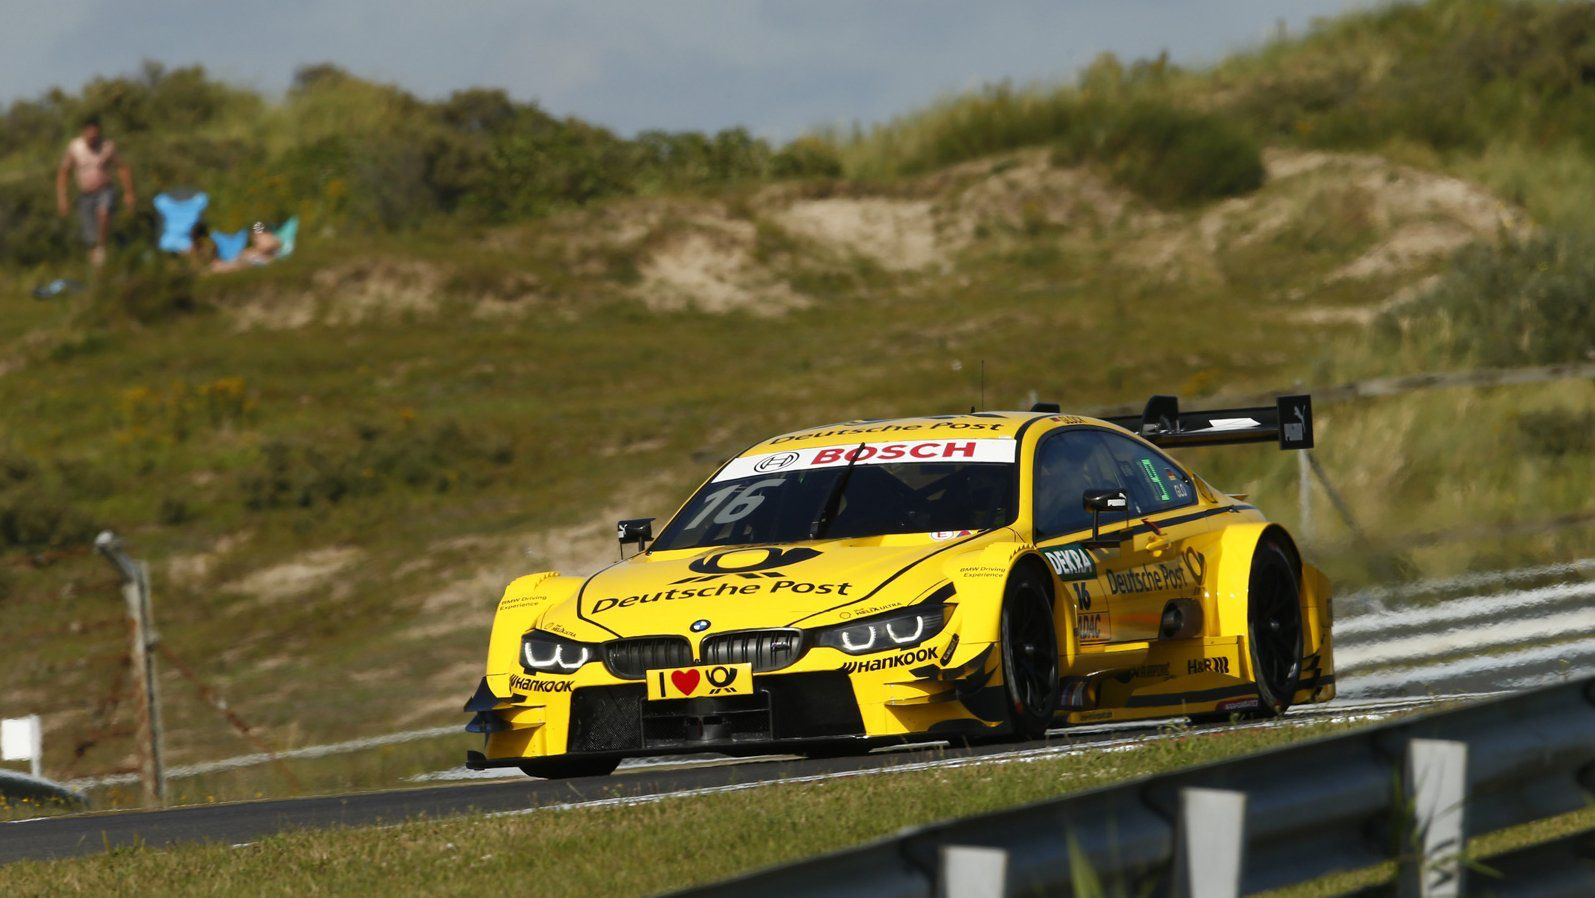 It's time for a nice day in a fast car! FP2 starts in 55 minutes. LIVE here: DTM.com/live #DTMZandvoort